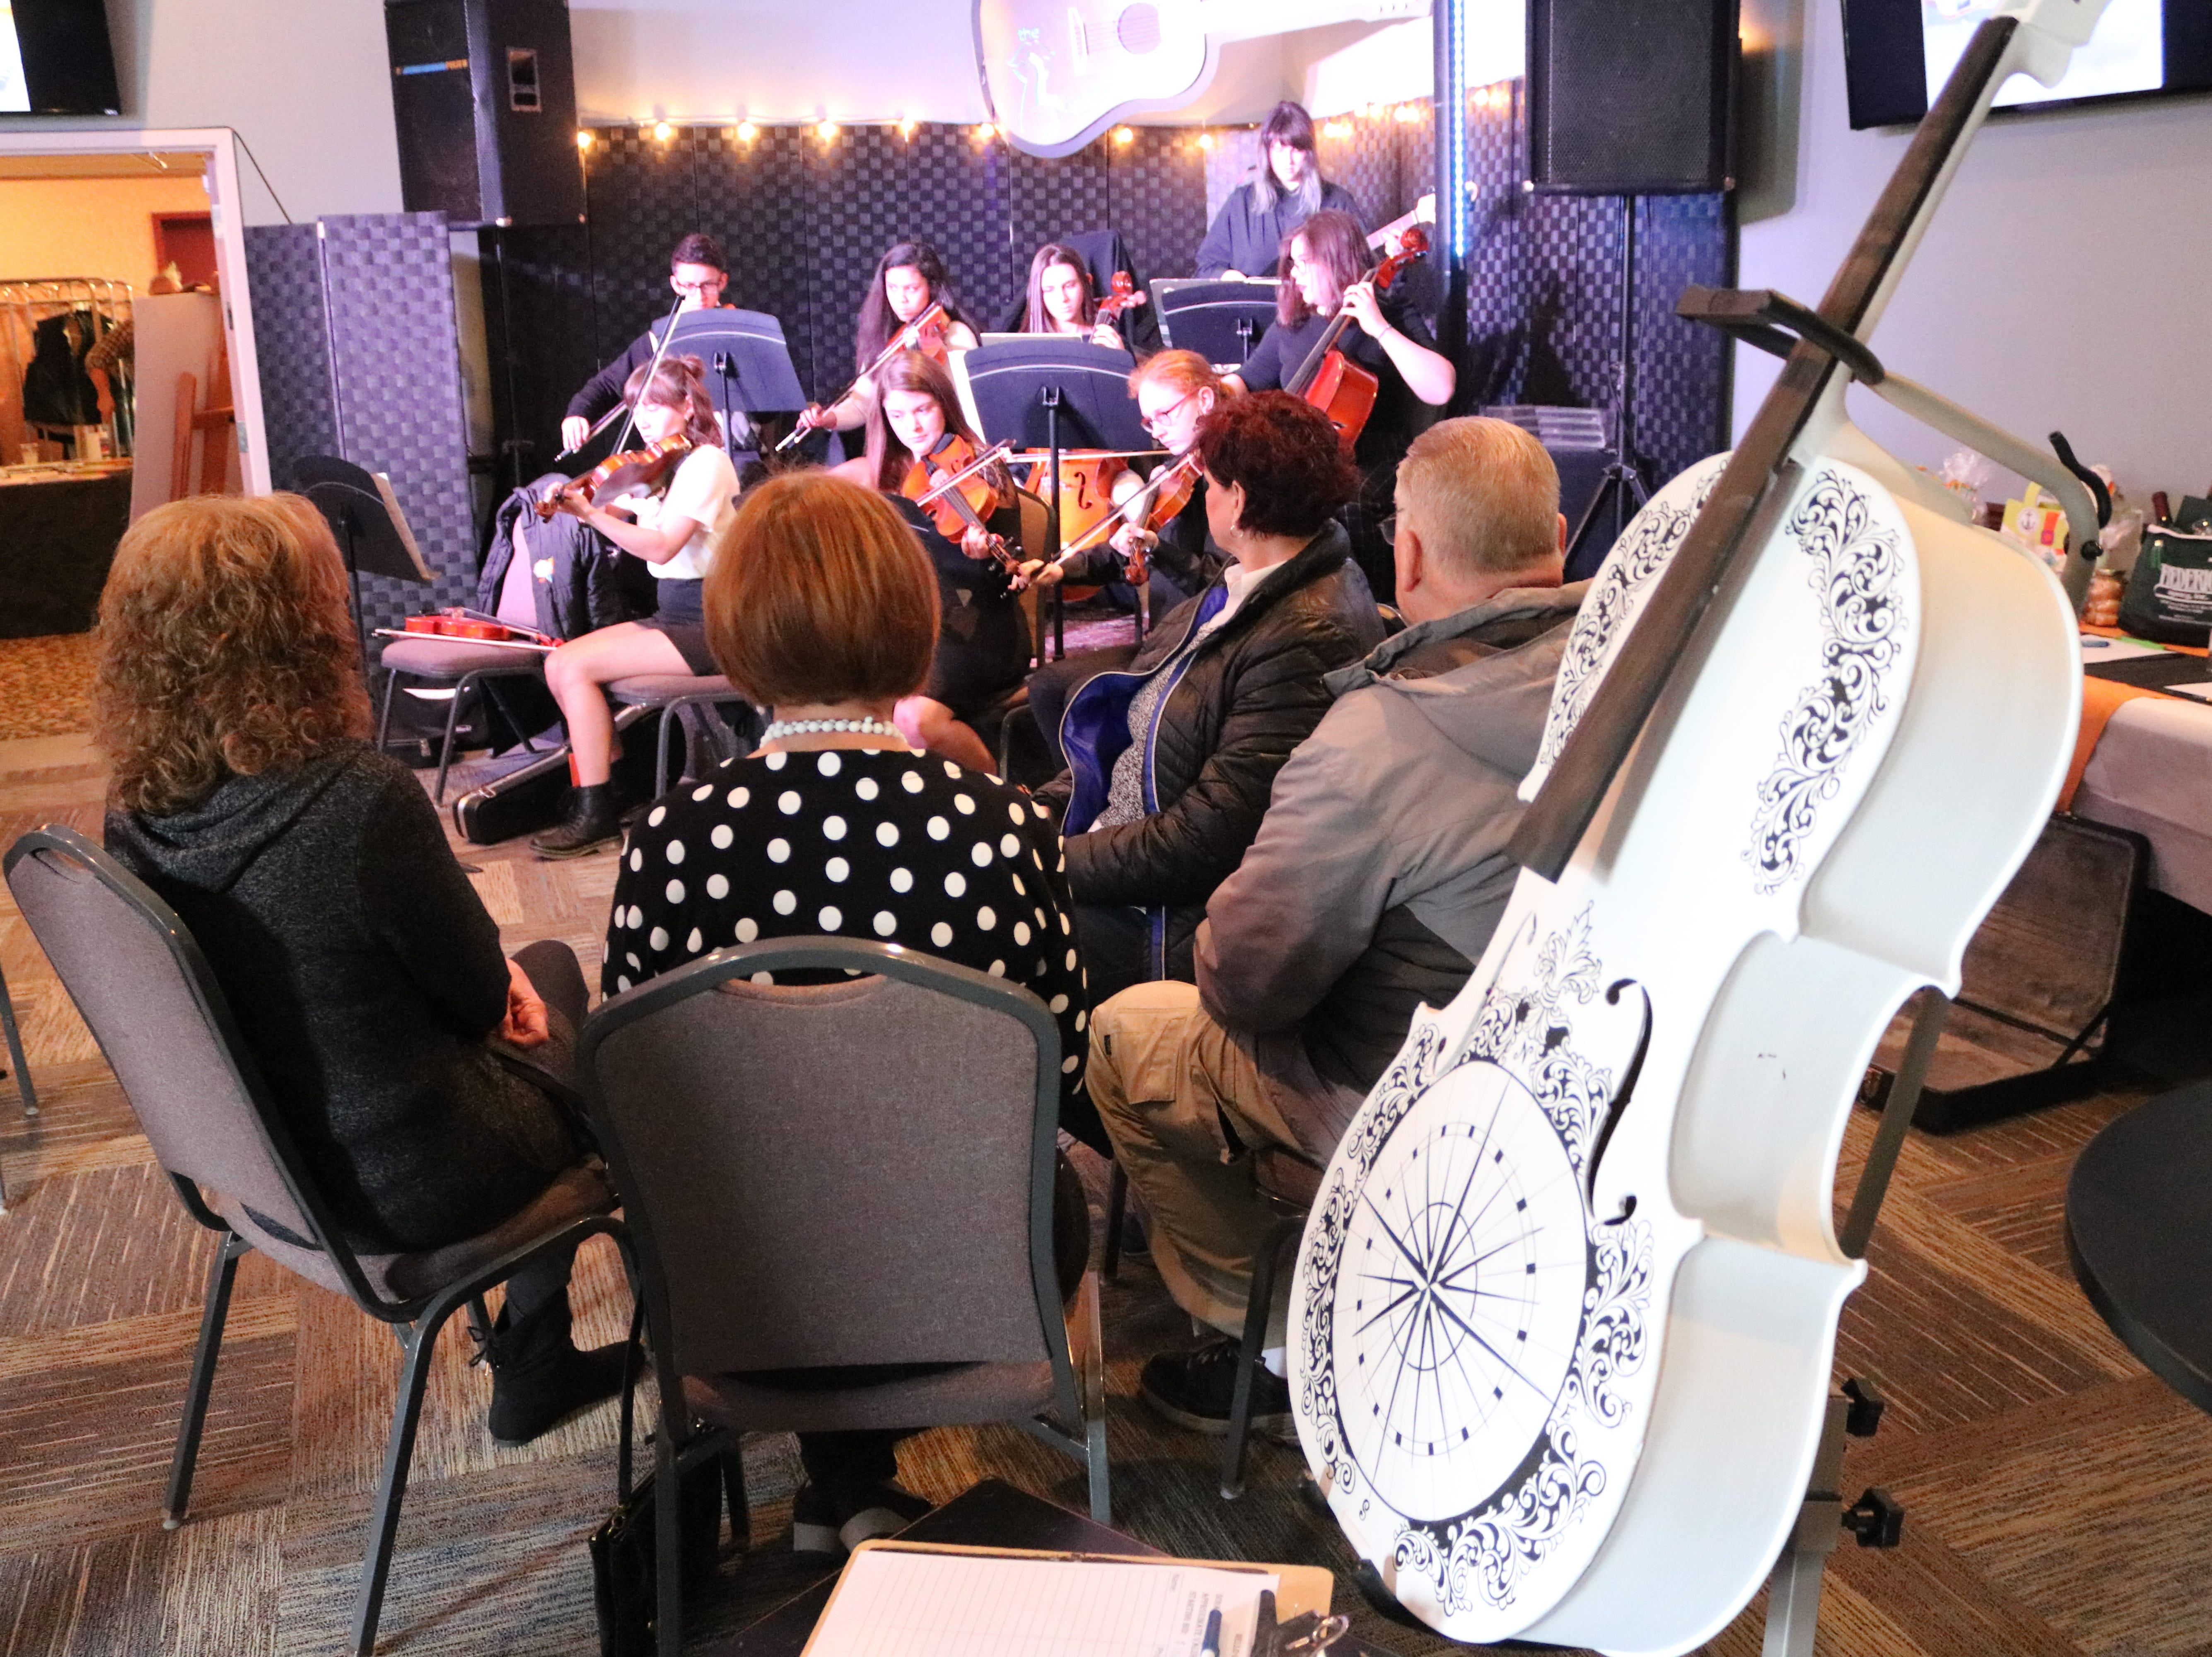 Four cellos, each hand-painted with a one-of-a-kind design by local artists, were donated and sold in silent auction as the focal point of the GPCAAC's Mello Cellos fundraiser on Tuesday.